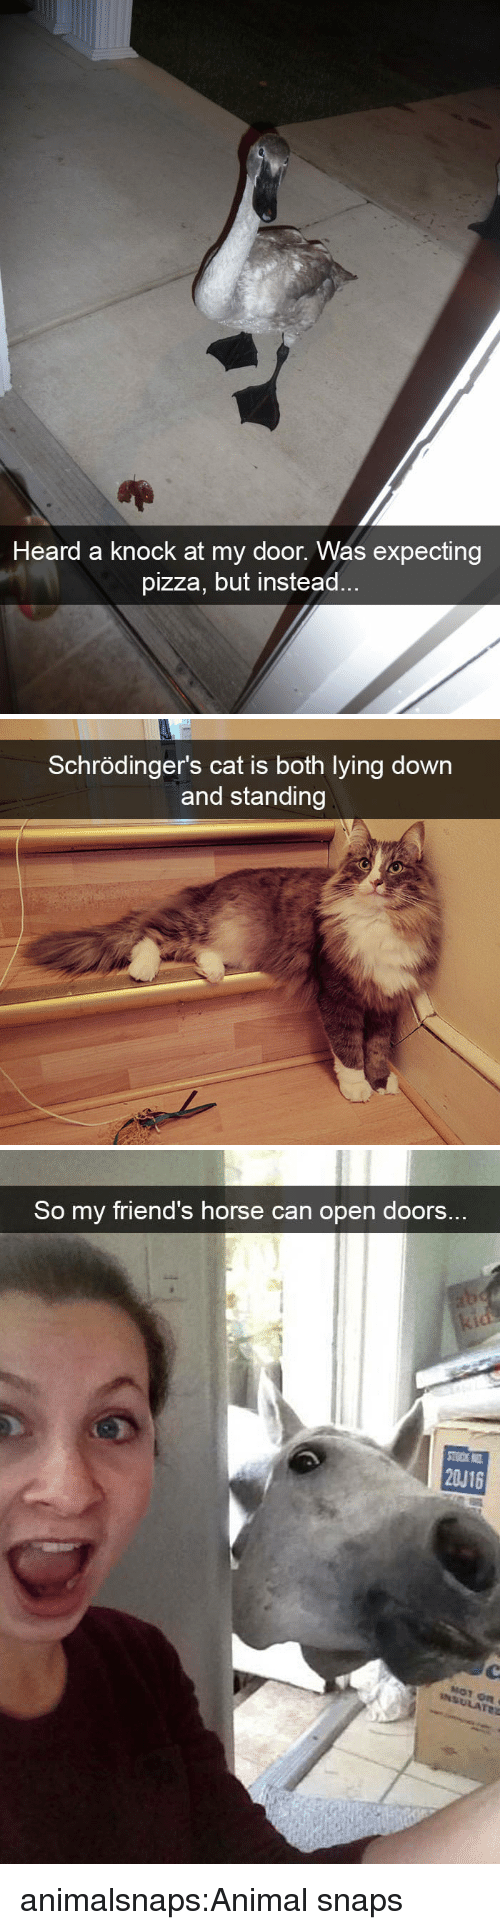 Friends, Pizza, and Target: Heard a knock at my door. Was expecting  pizza, but instead   Schrödinger's cat is both lying down  and standing   So my friend's horse can open doors..  20J16 animalsnaps:Animal snaps